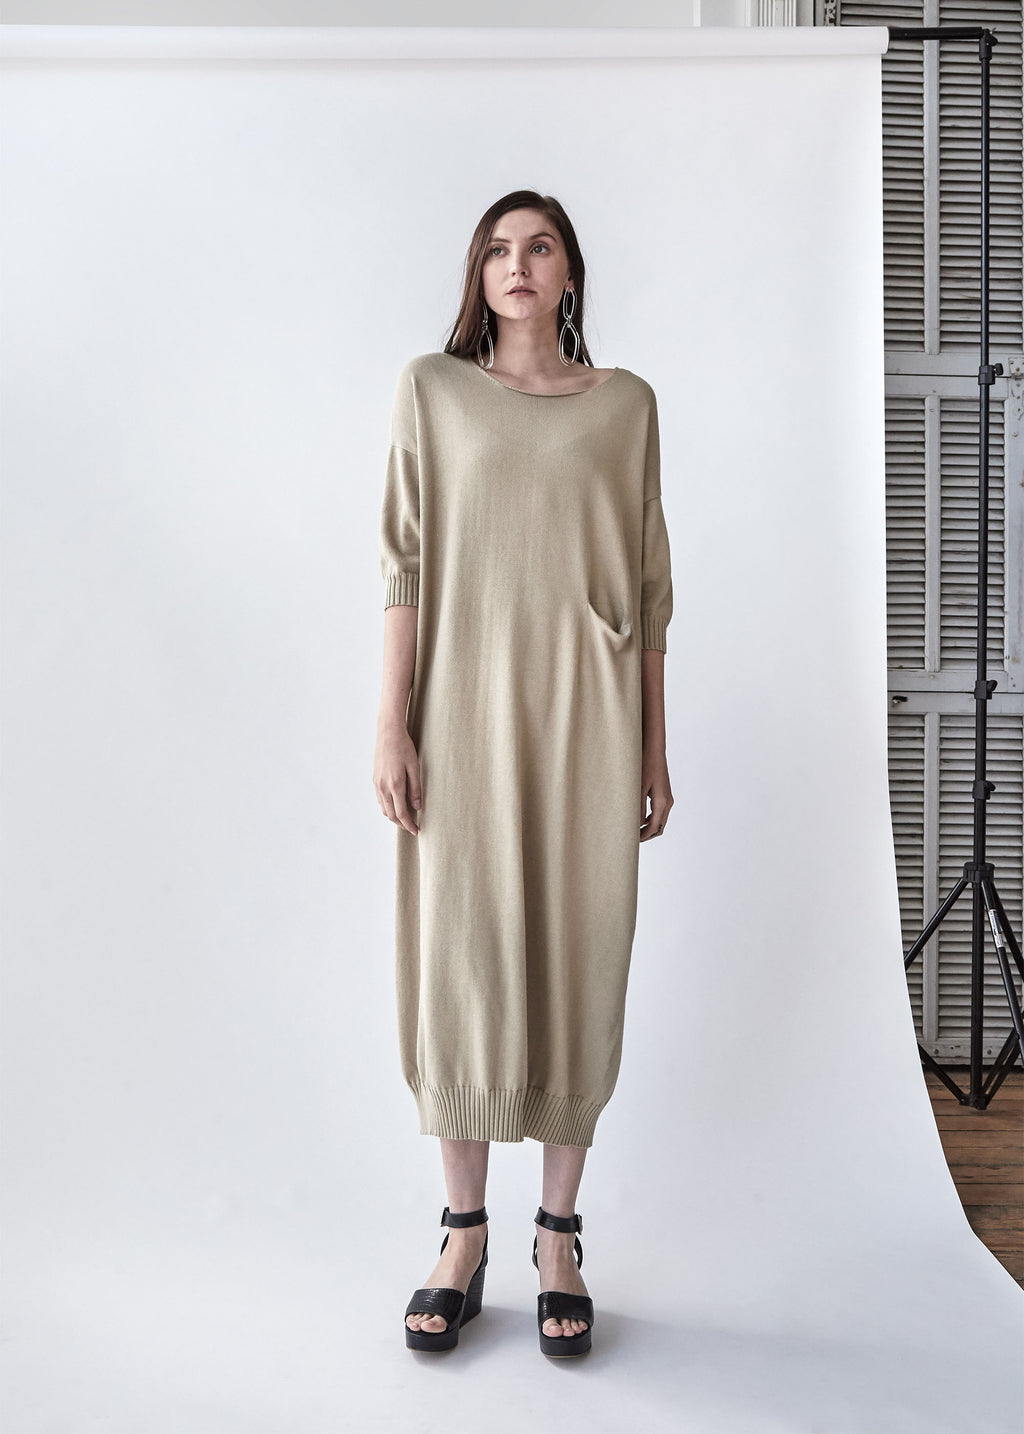 Big Crewneck Dress in Antique